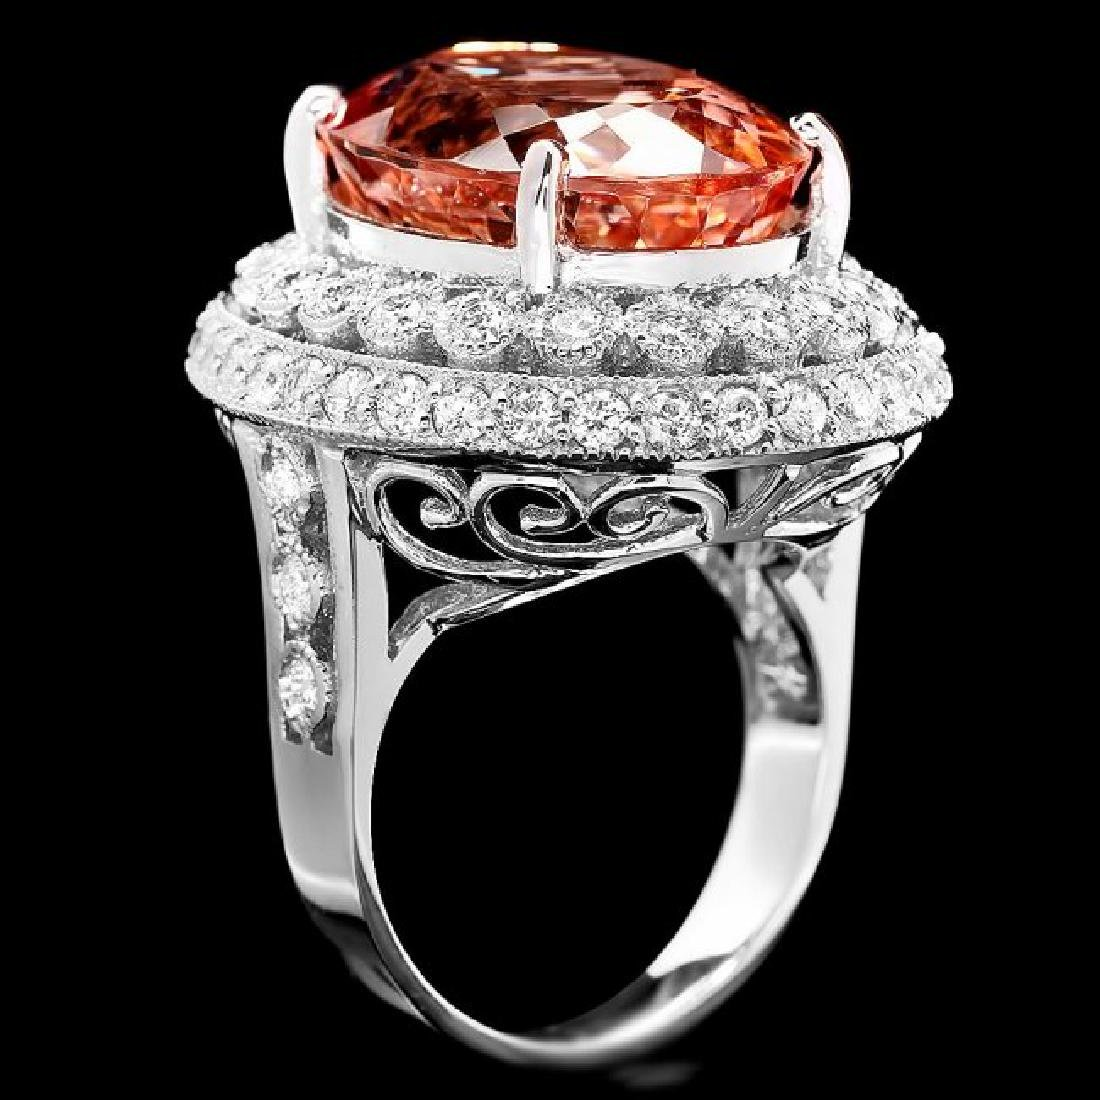 14k Gold 16.20ct Morganite 1.85ct Diamond Ring - 2